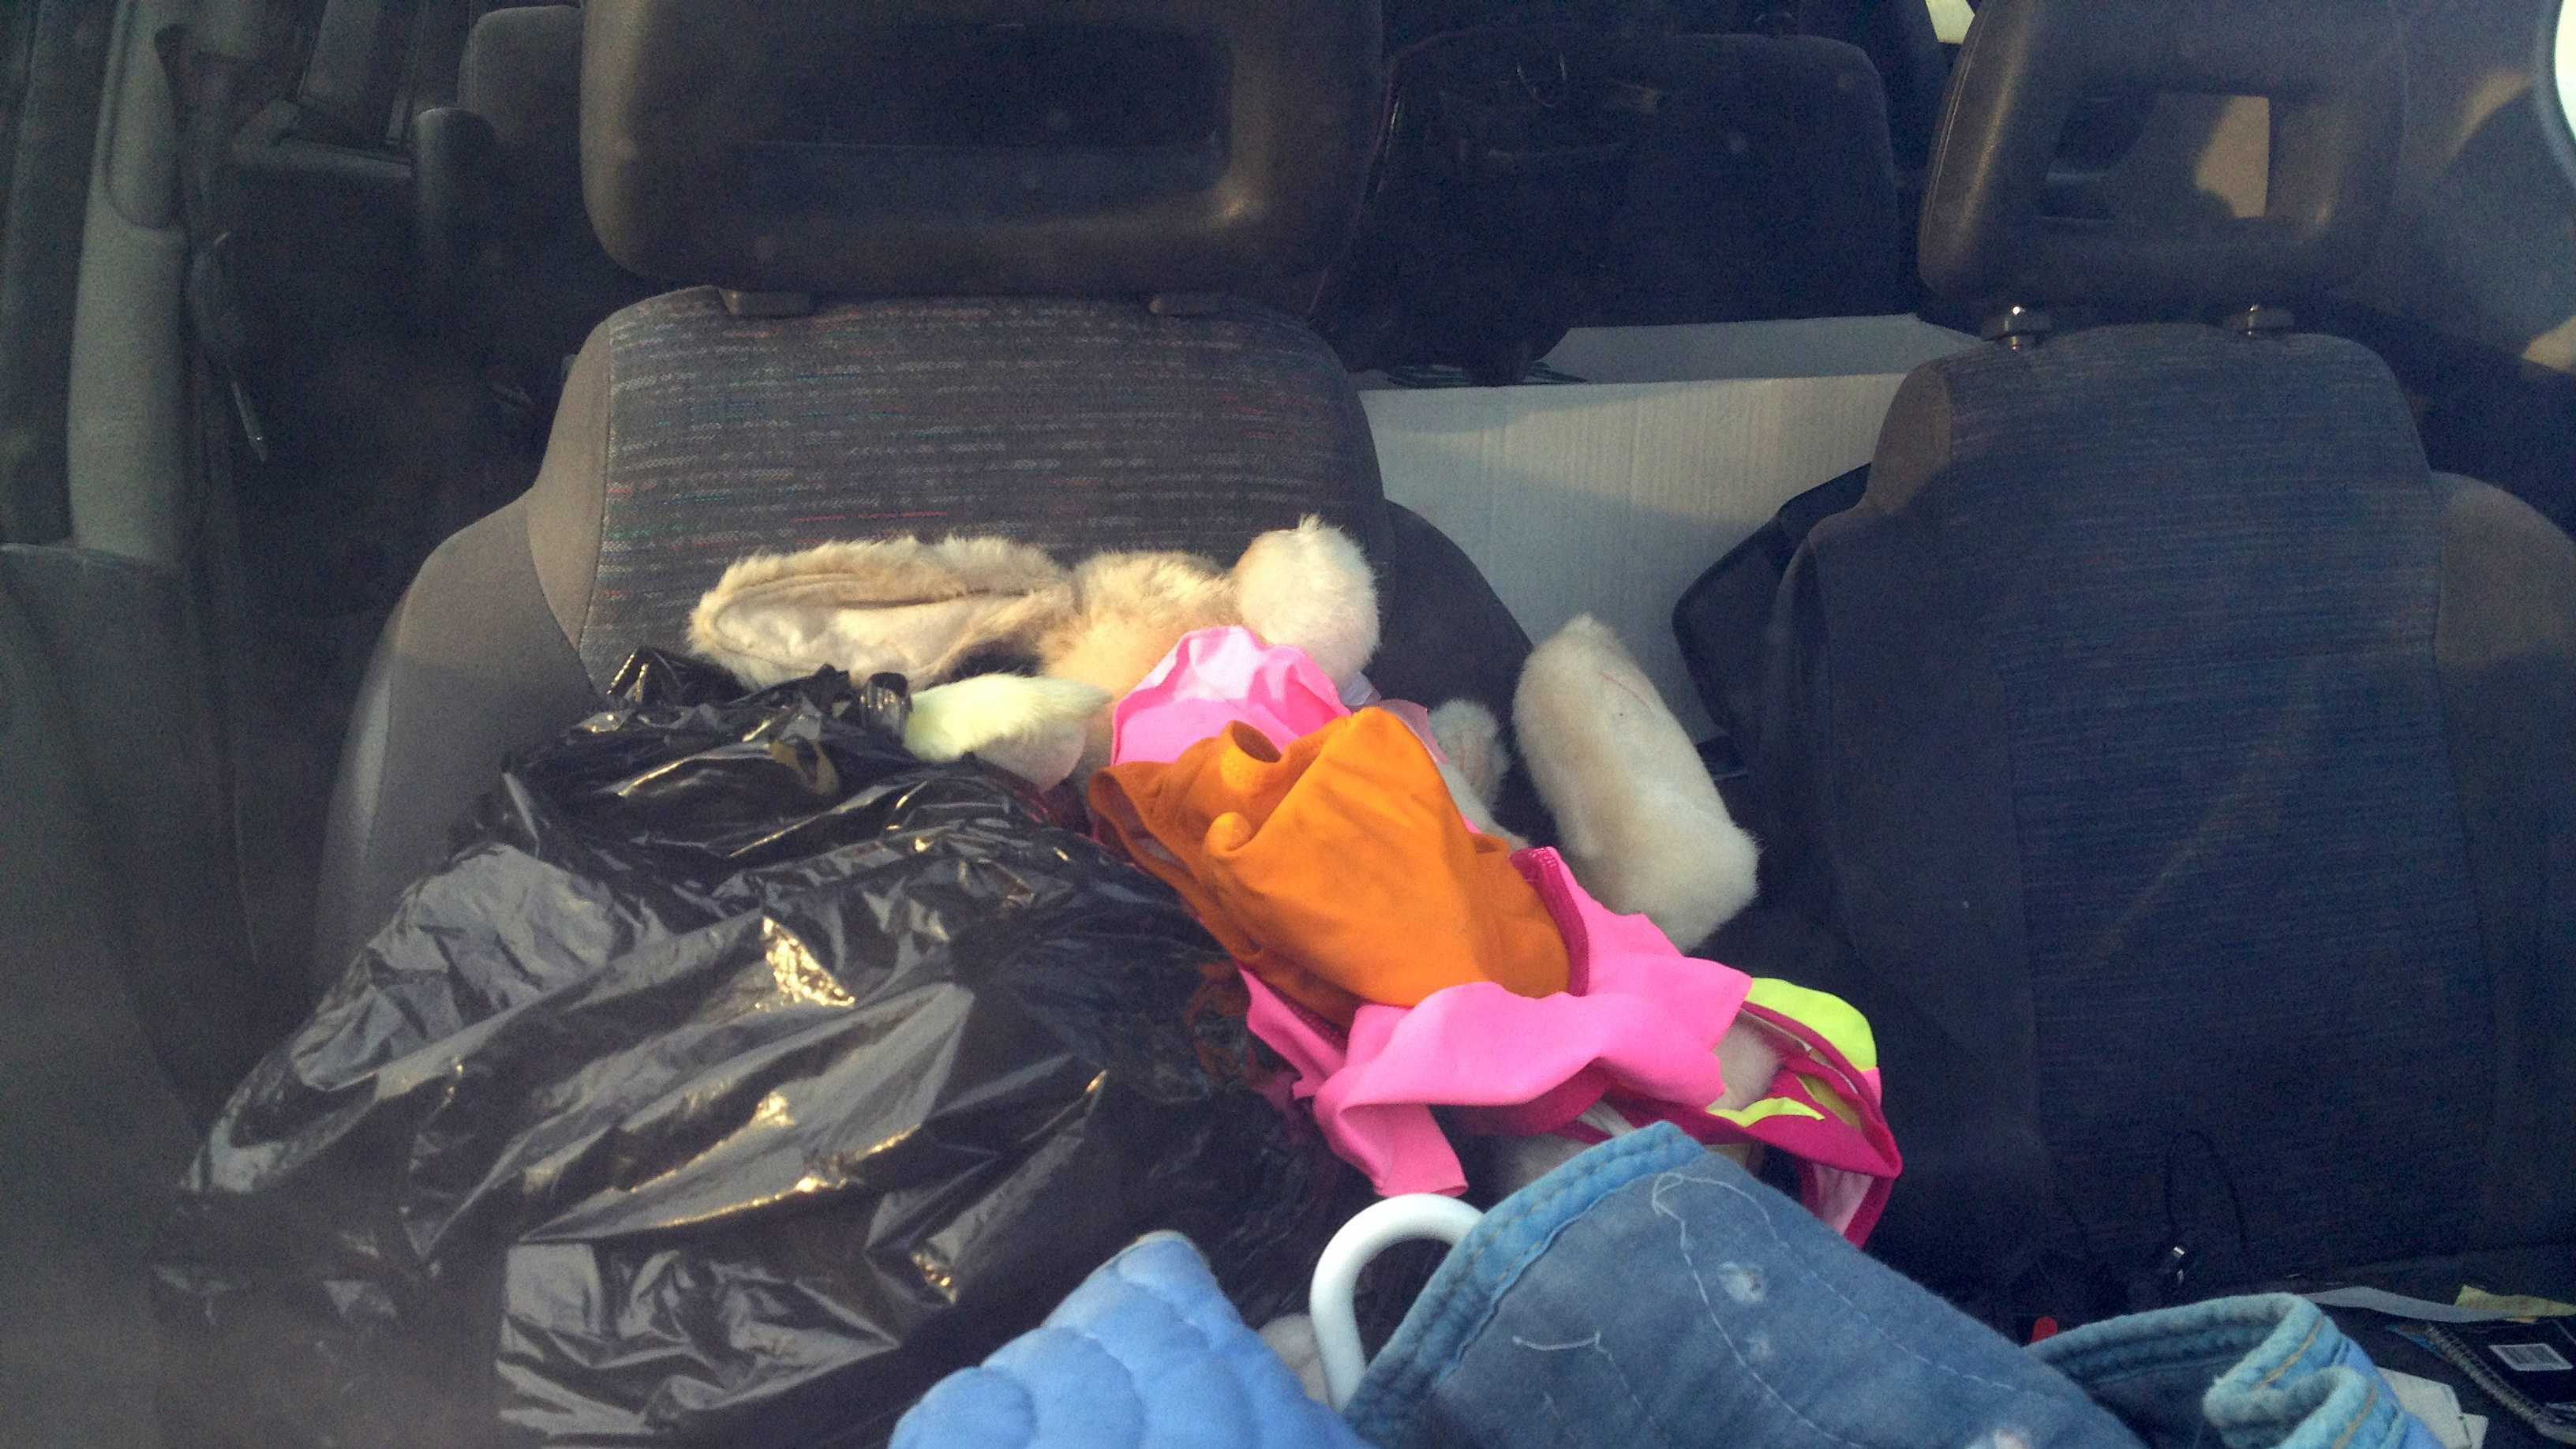 Stuffed Animals in Suspect's Car